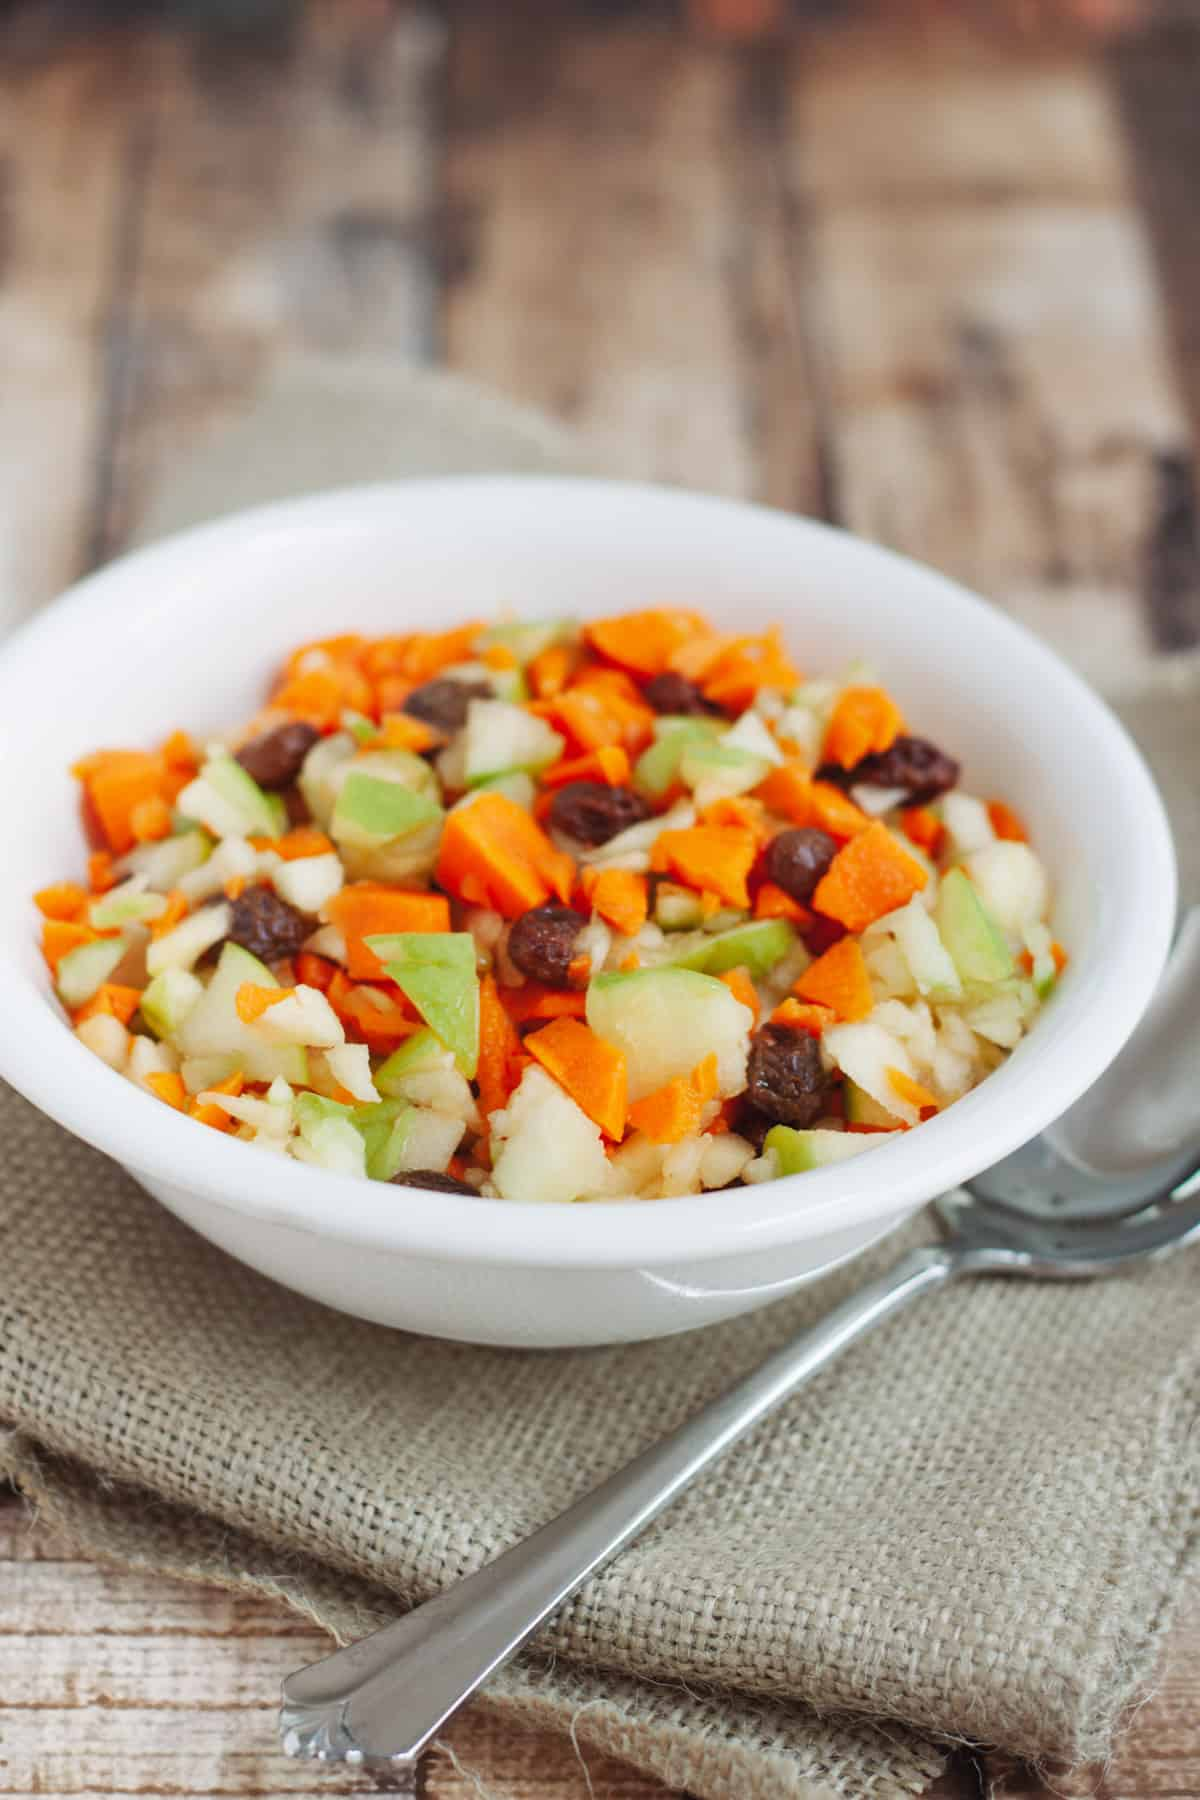 White bowl with finely chopped apples, carrots, and raisins on a burlap napkin with silver spoon.